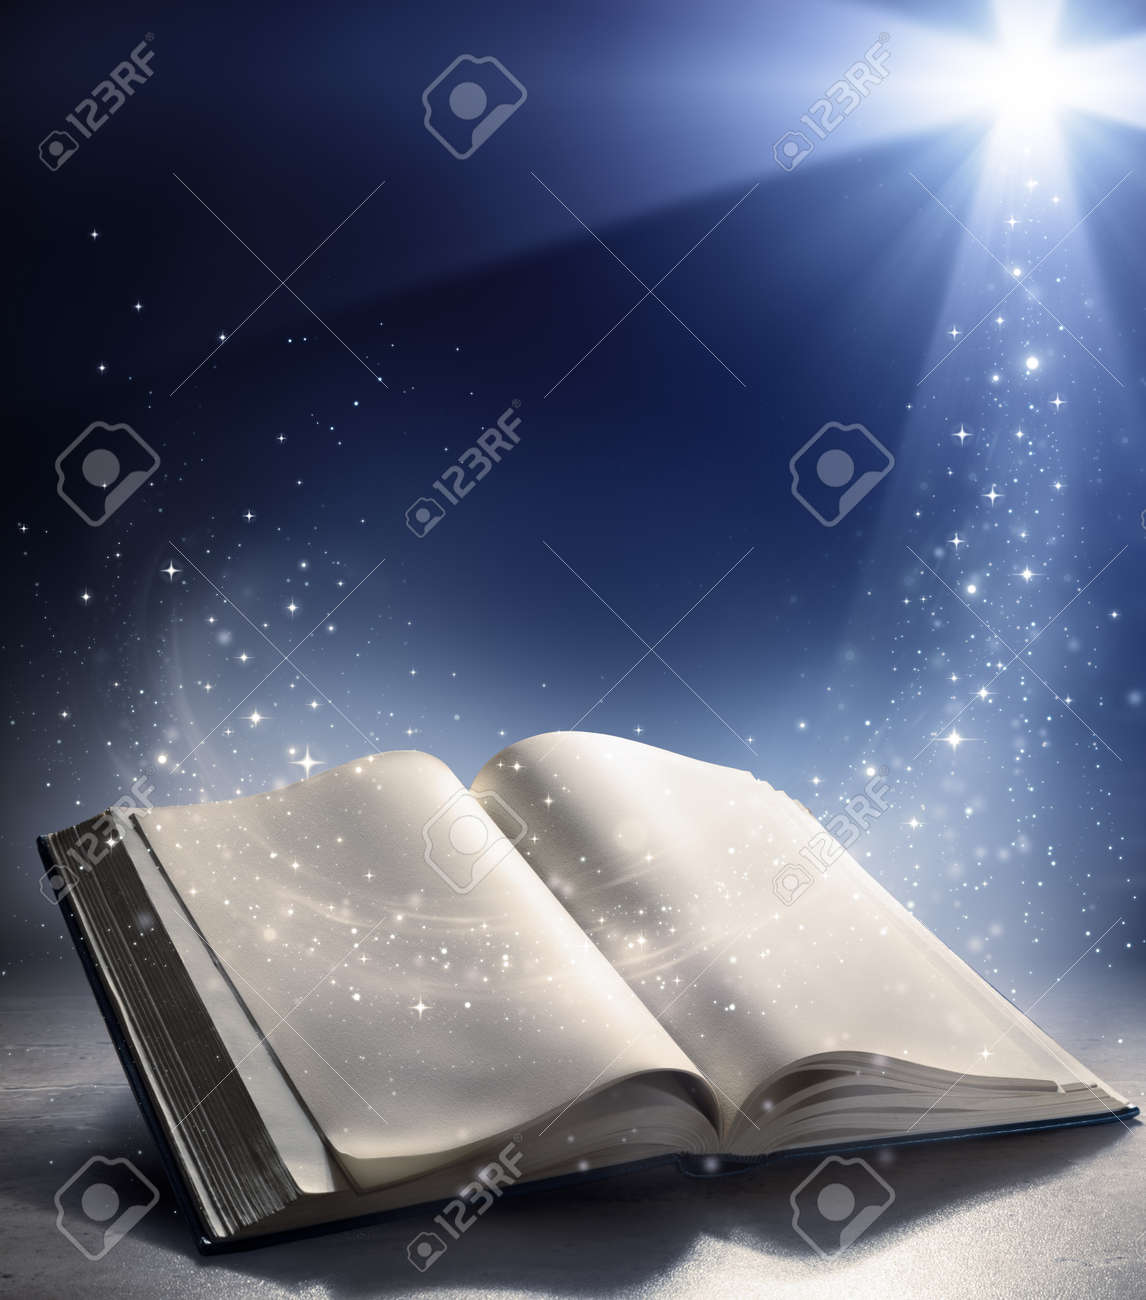 bible story stock photos u0026 pictures royalty free bible story